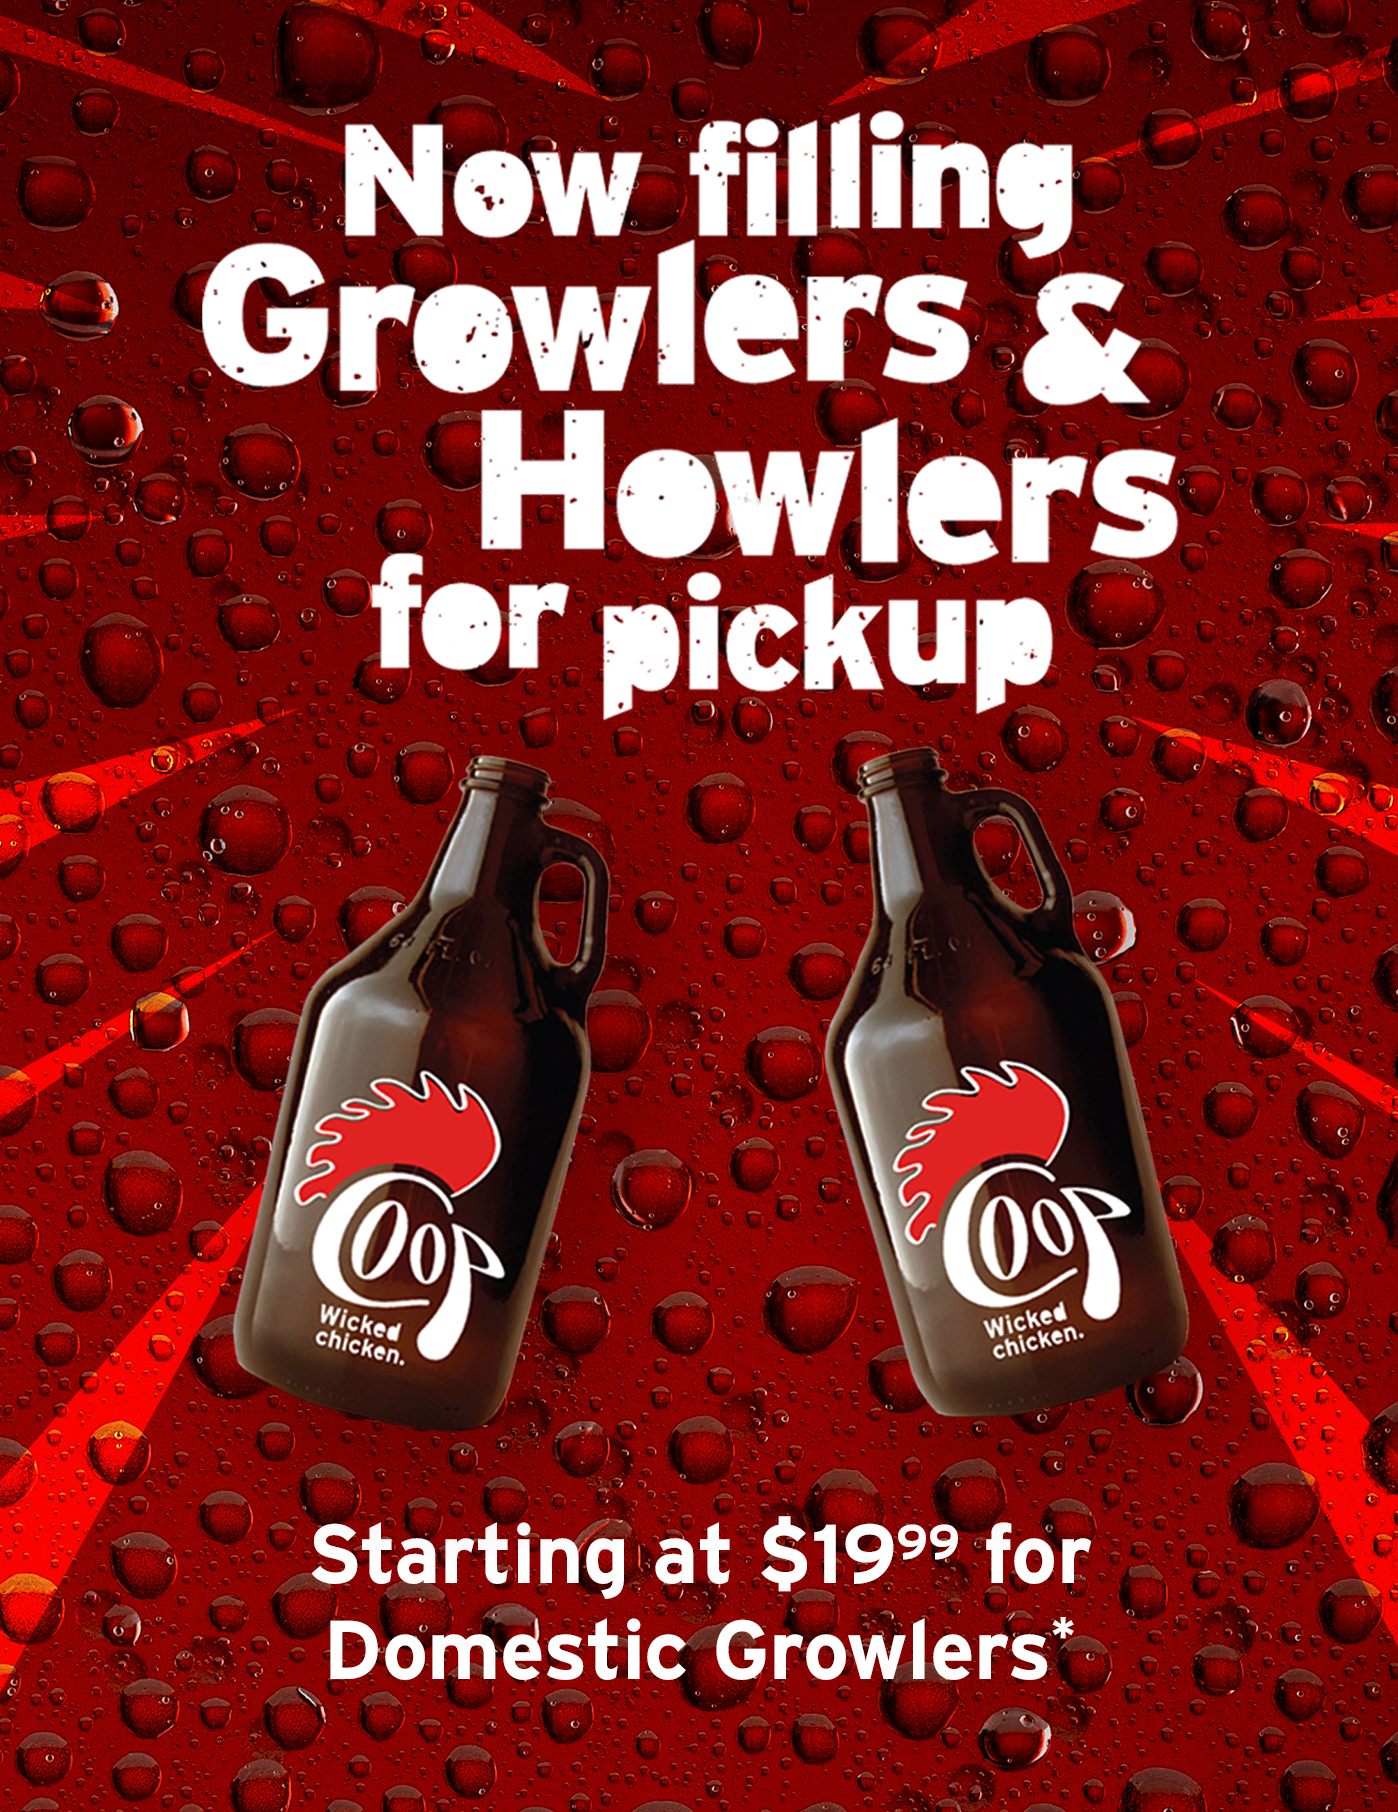 Now filling Growlers and Howlers for pickup. Starting at 19.99* for domestic growlers. * craft growlers and howlers also available. Does not include refundable deposit.